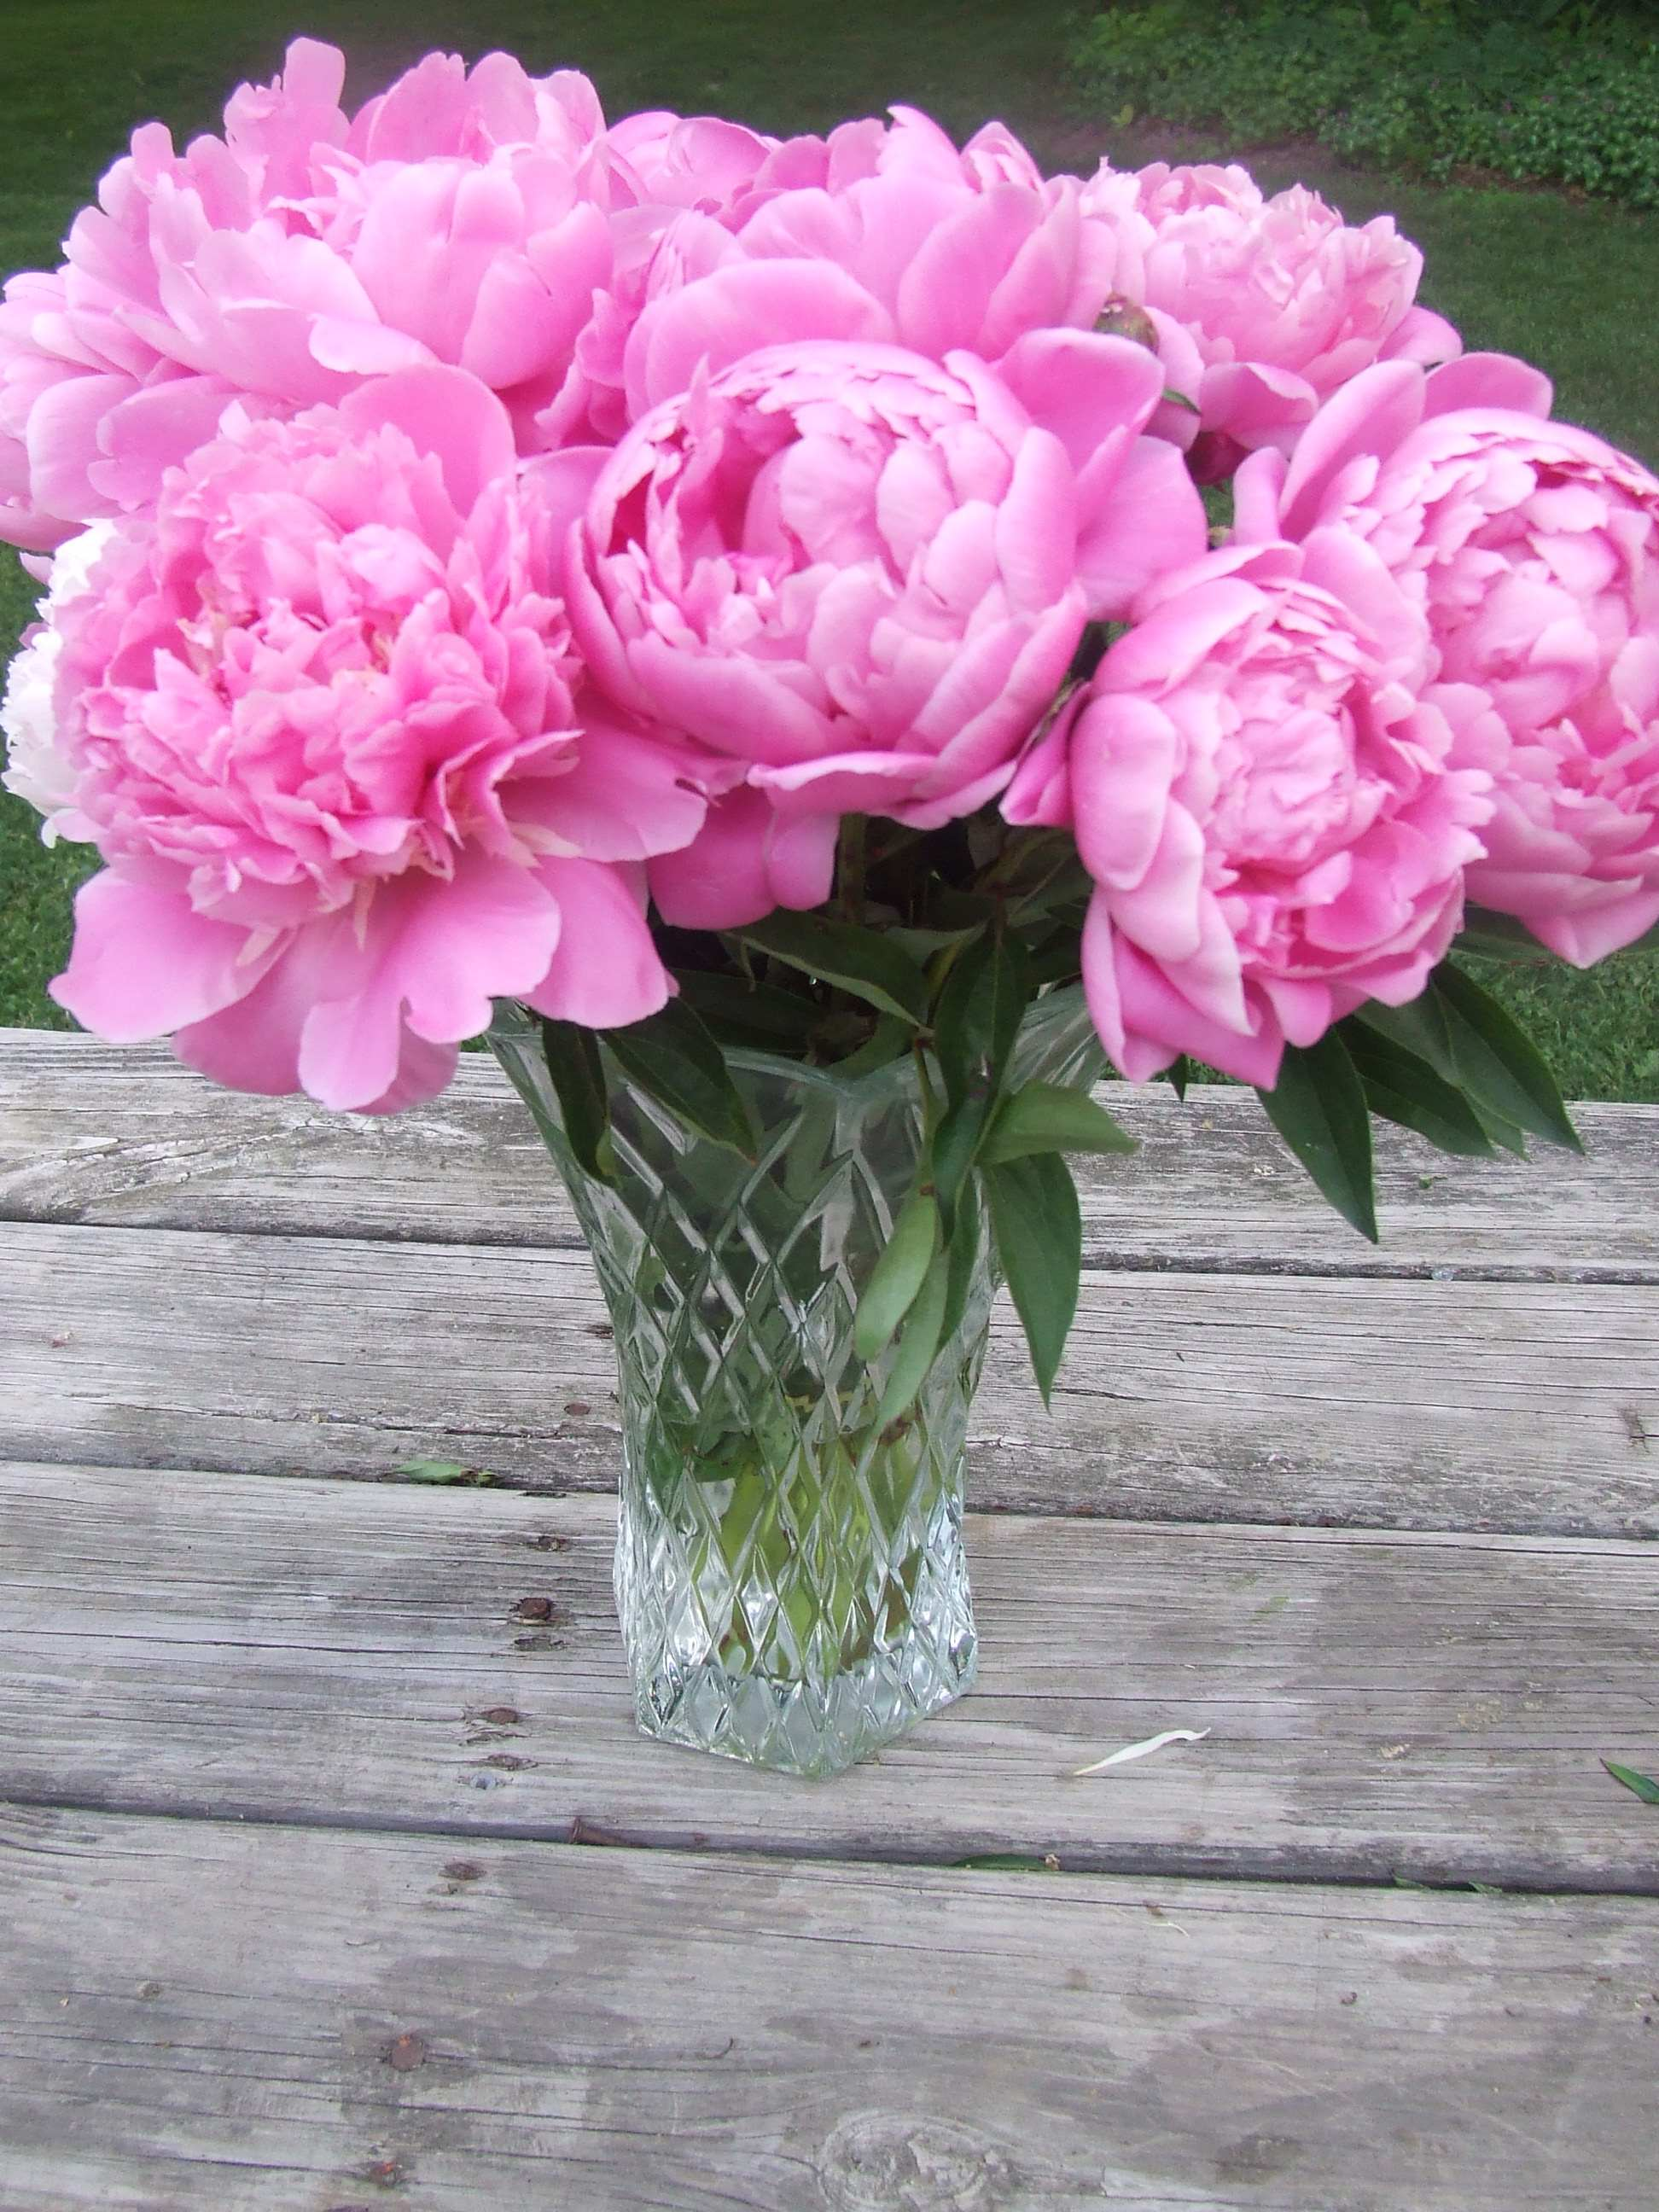 Vase_of_Pink_Peonies_Flowers